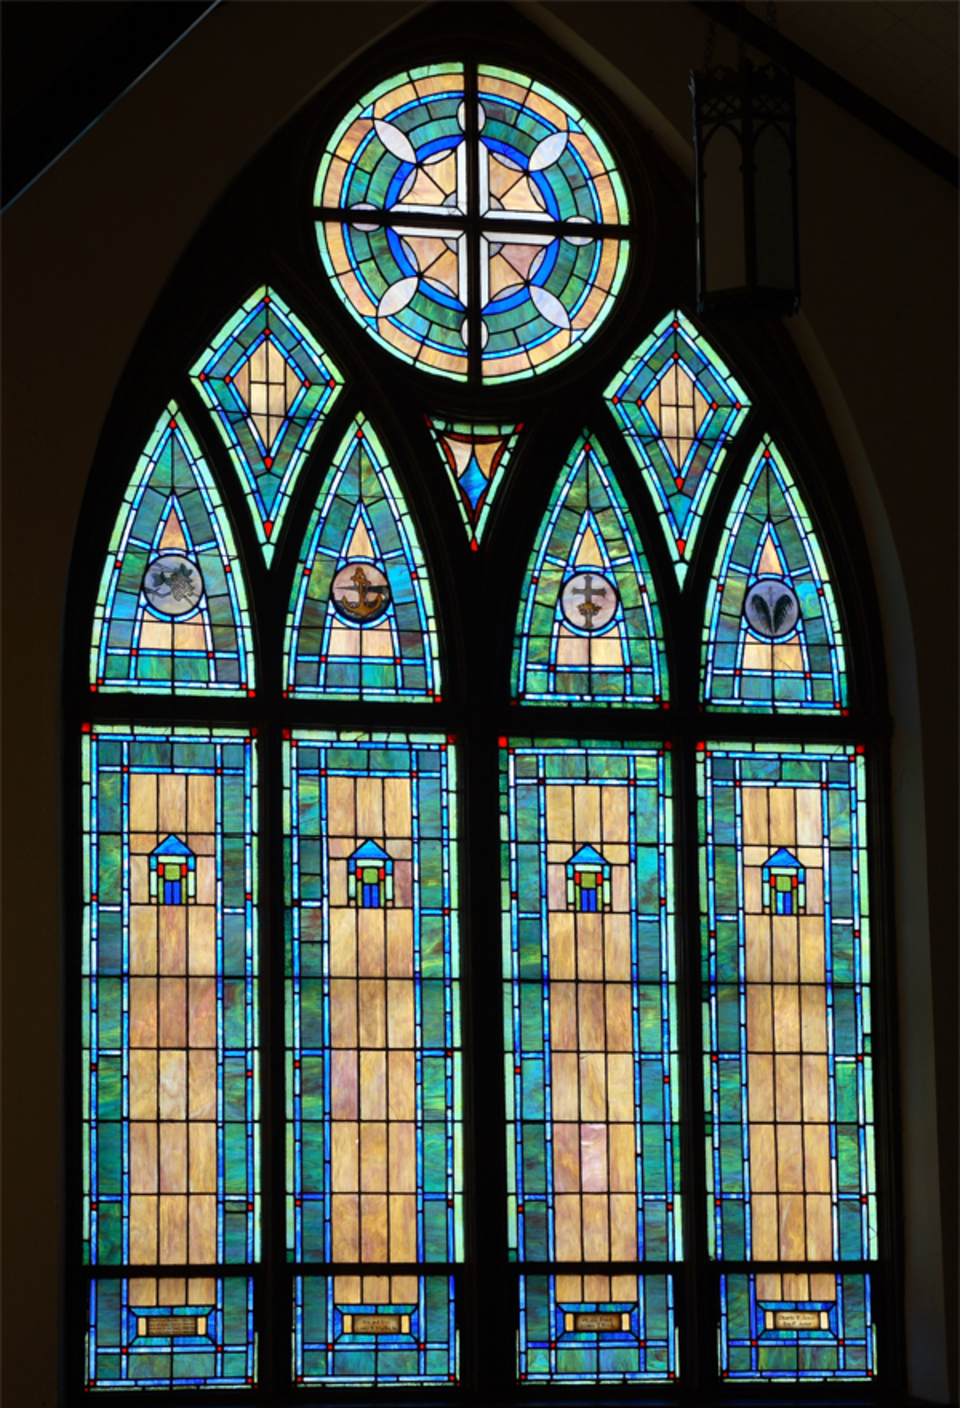 Stained glass (2)20150709 15068 17m7bbp